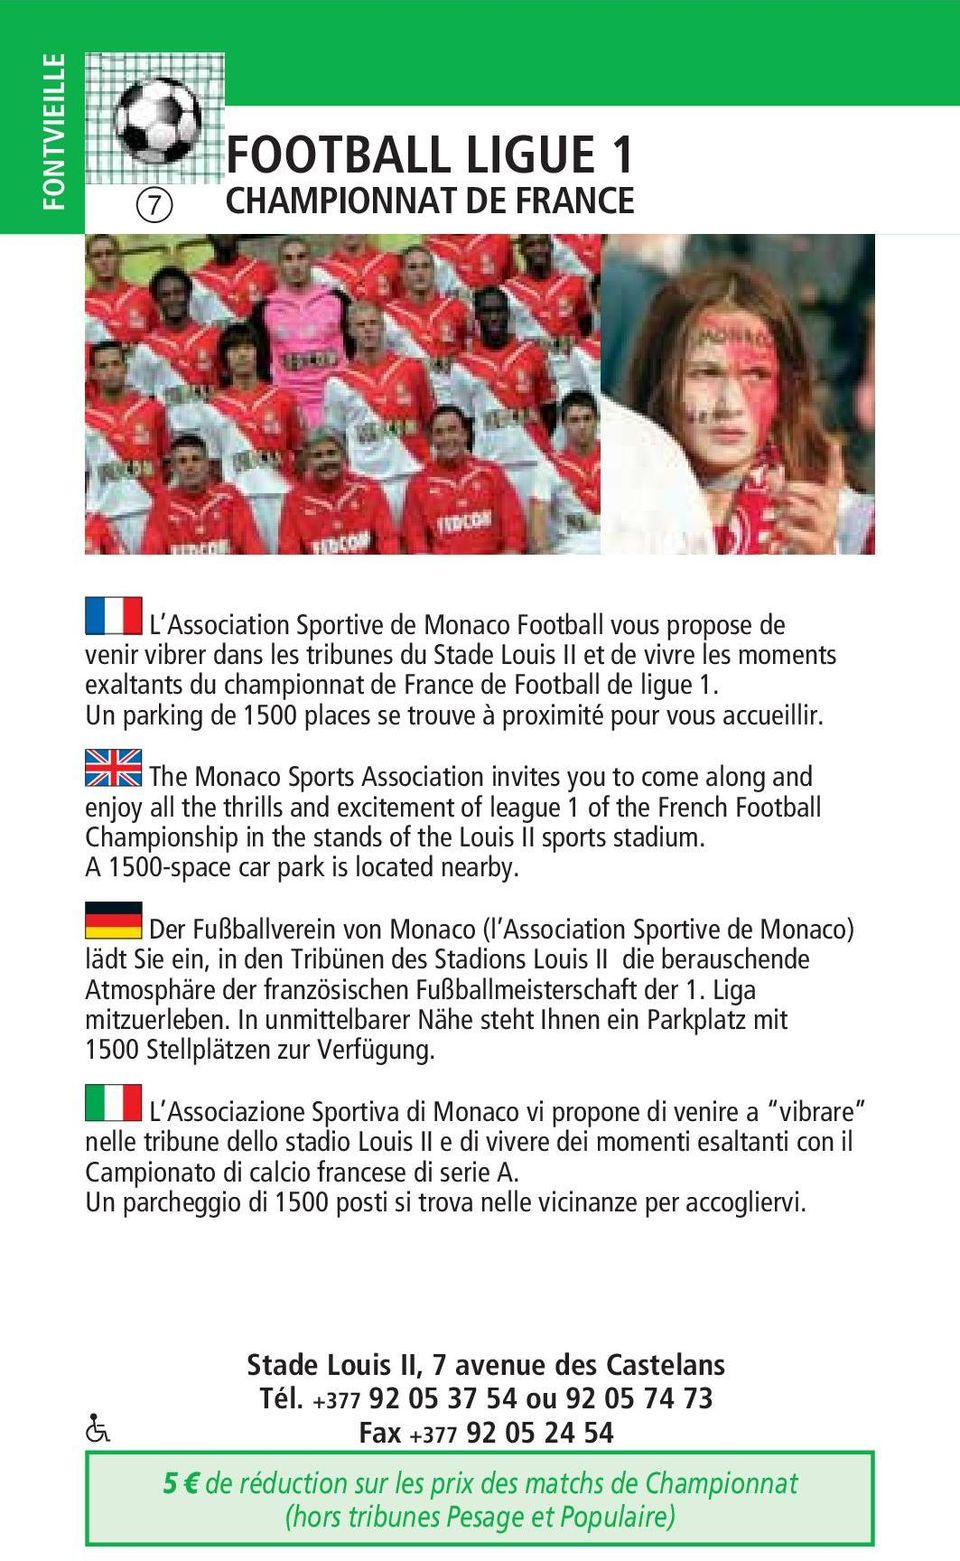 The Monaco Sports Association invites you to come along and enjoy all the thrills and excitement of league 1 of the French Football Championship in the stands of the Louis II sports stadium.